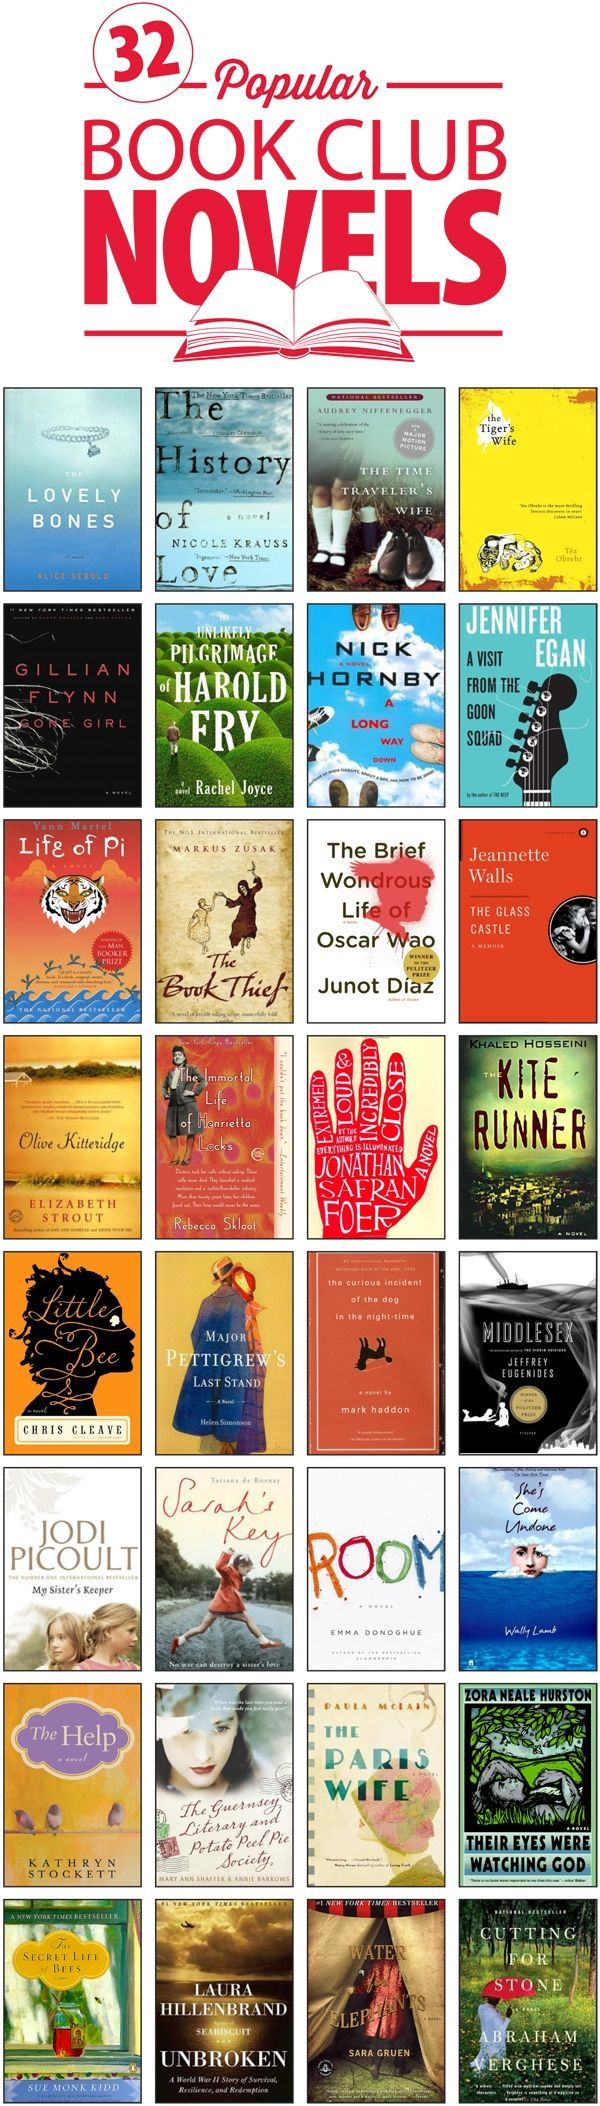 In Case You Are Looking For Some Books To Read Here Is A List Of